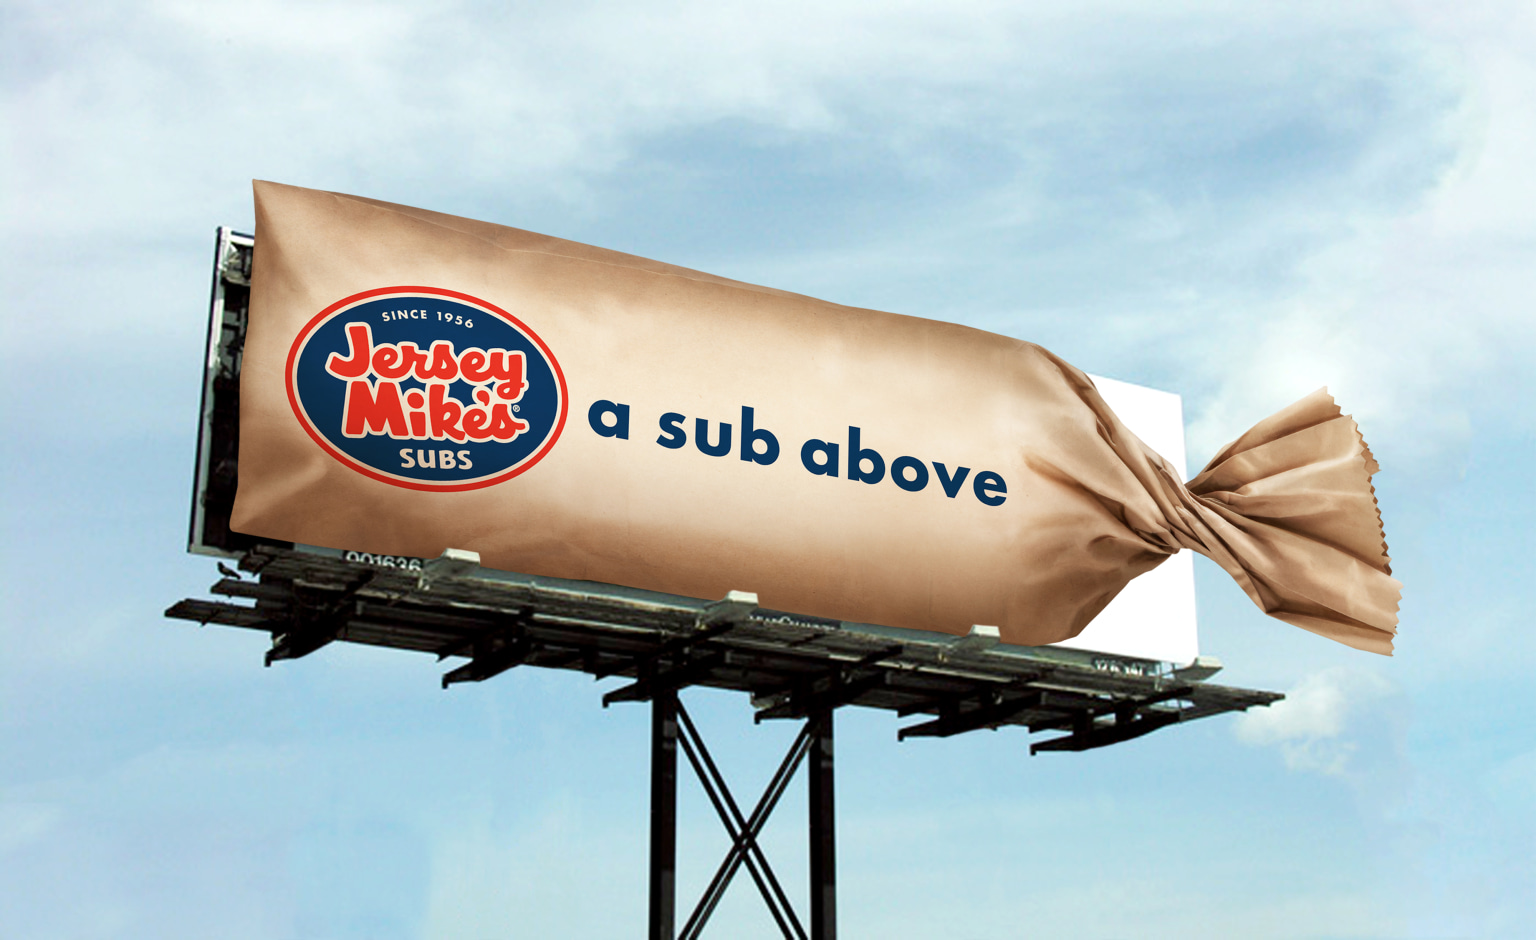 Jersey Mike's Subs - A Sub Above Campaign